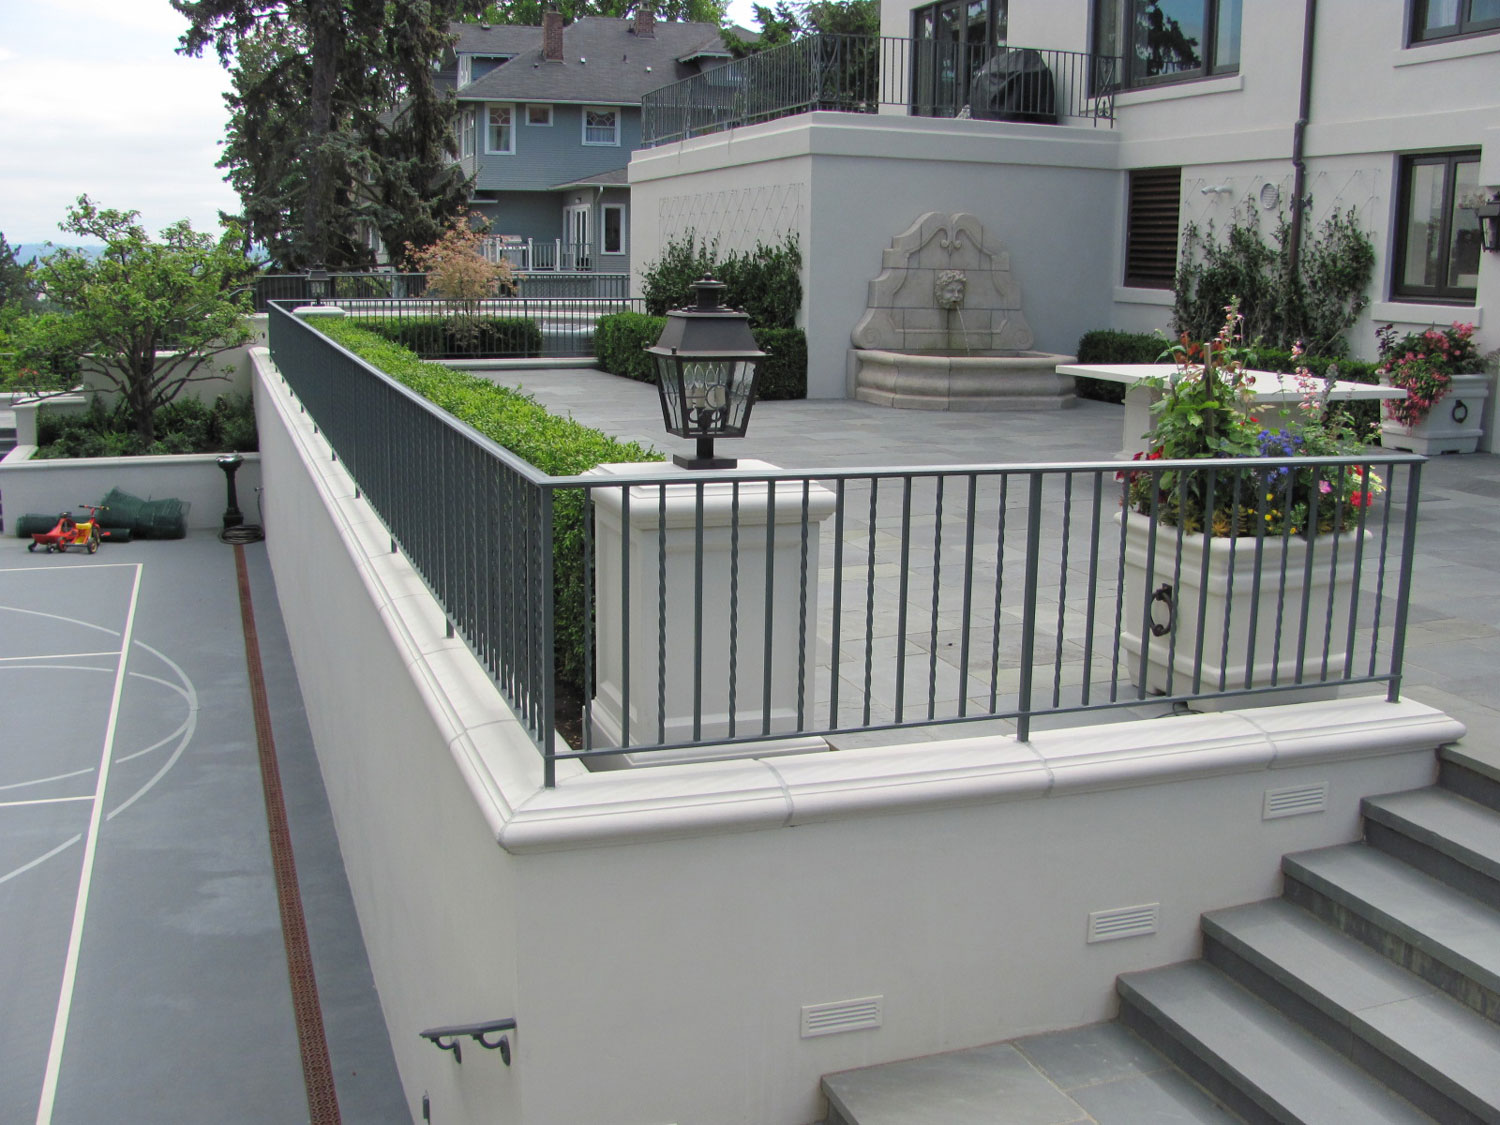 Iron Handrails and Guardrails for Slate Patio - Wrap Around Guardrails- Seattle, WA